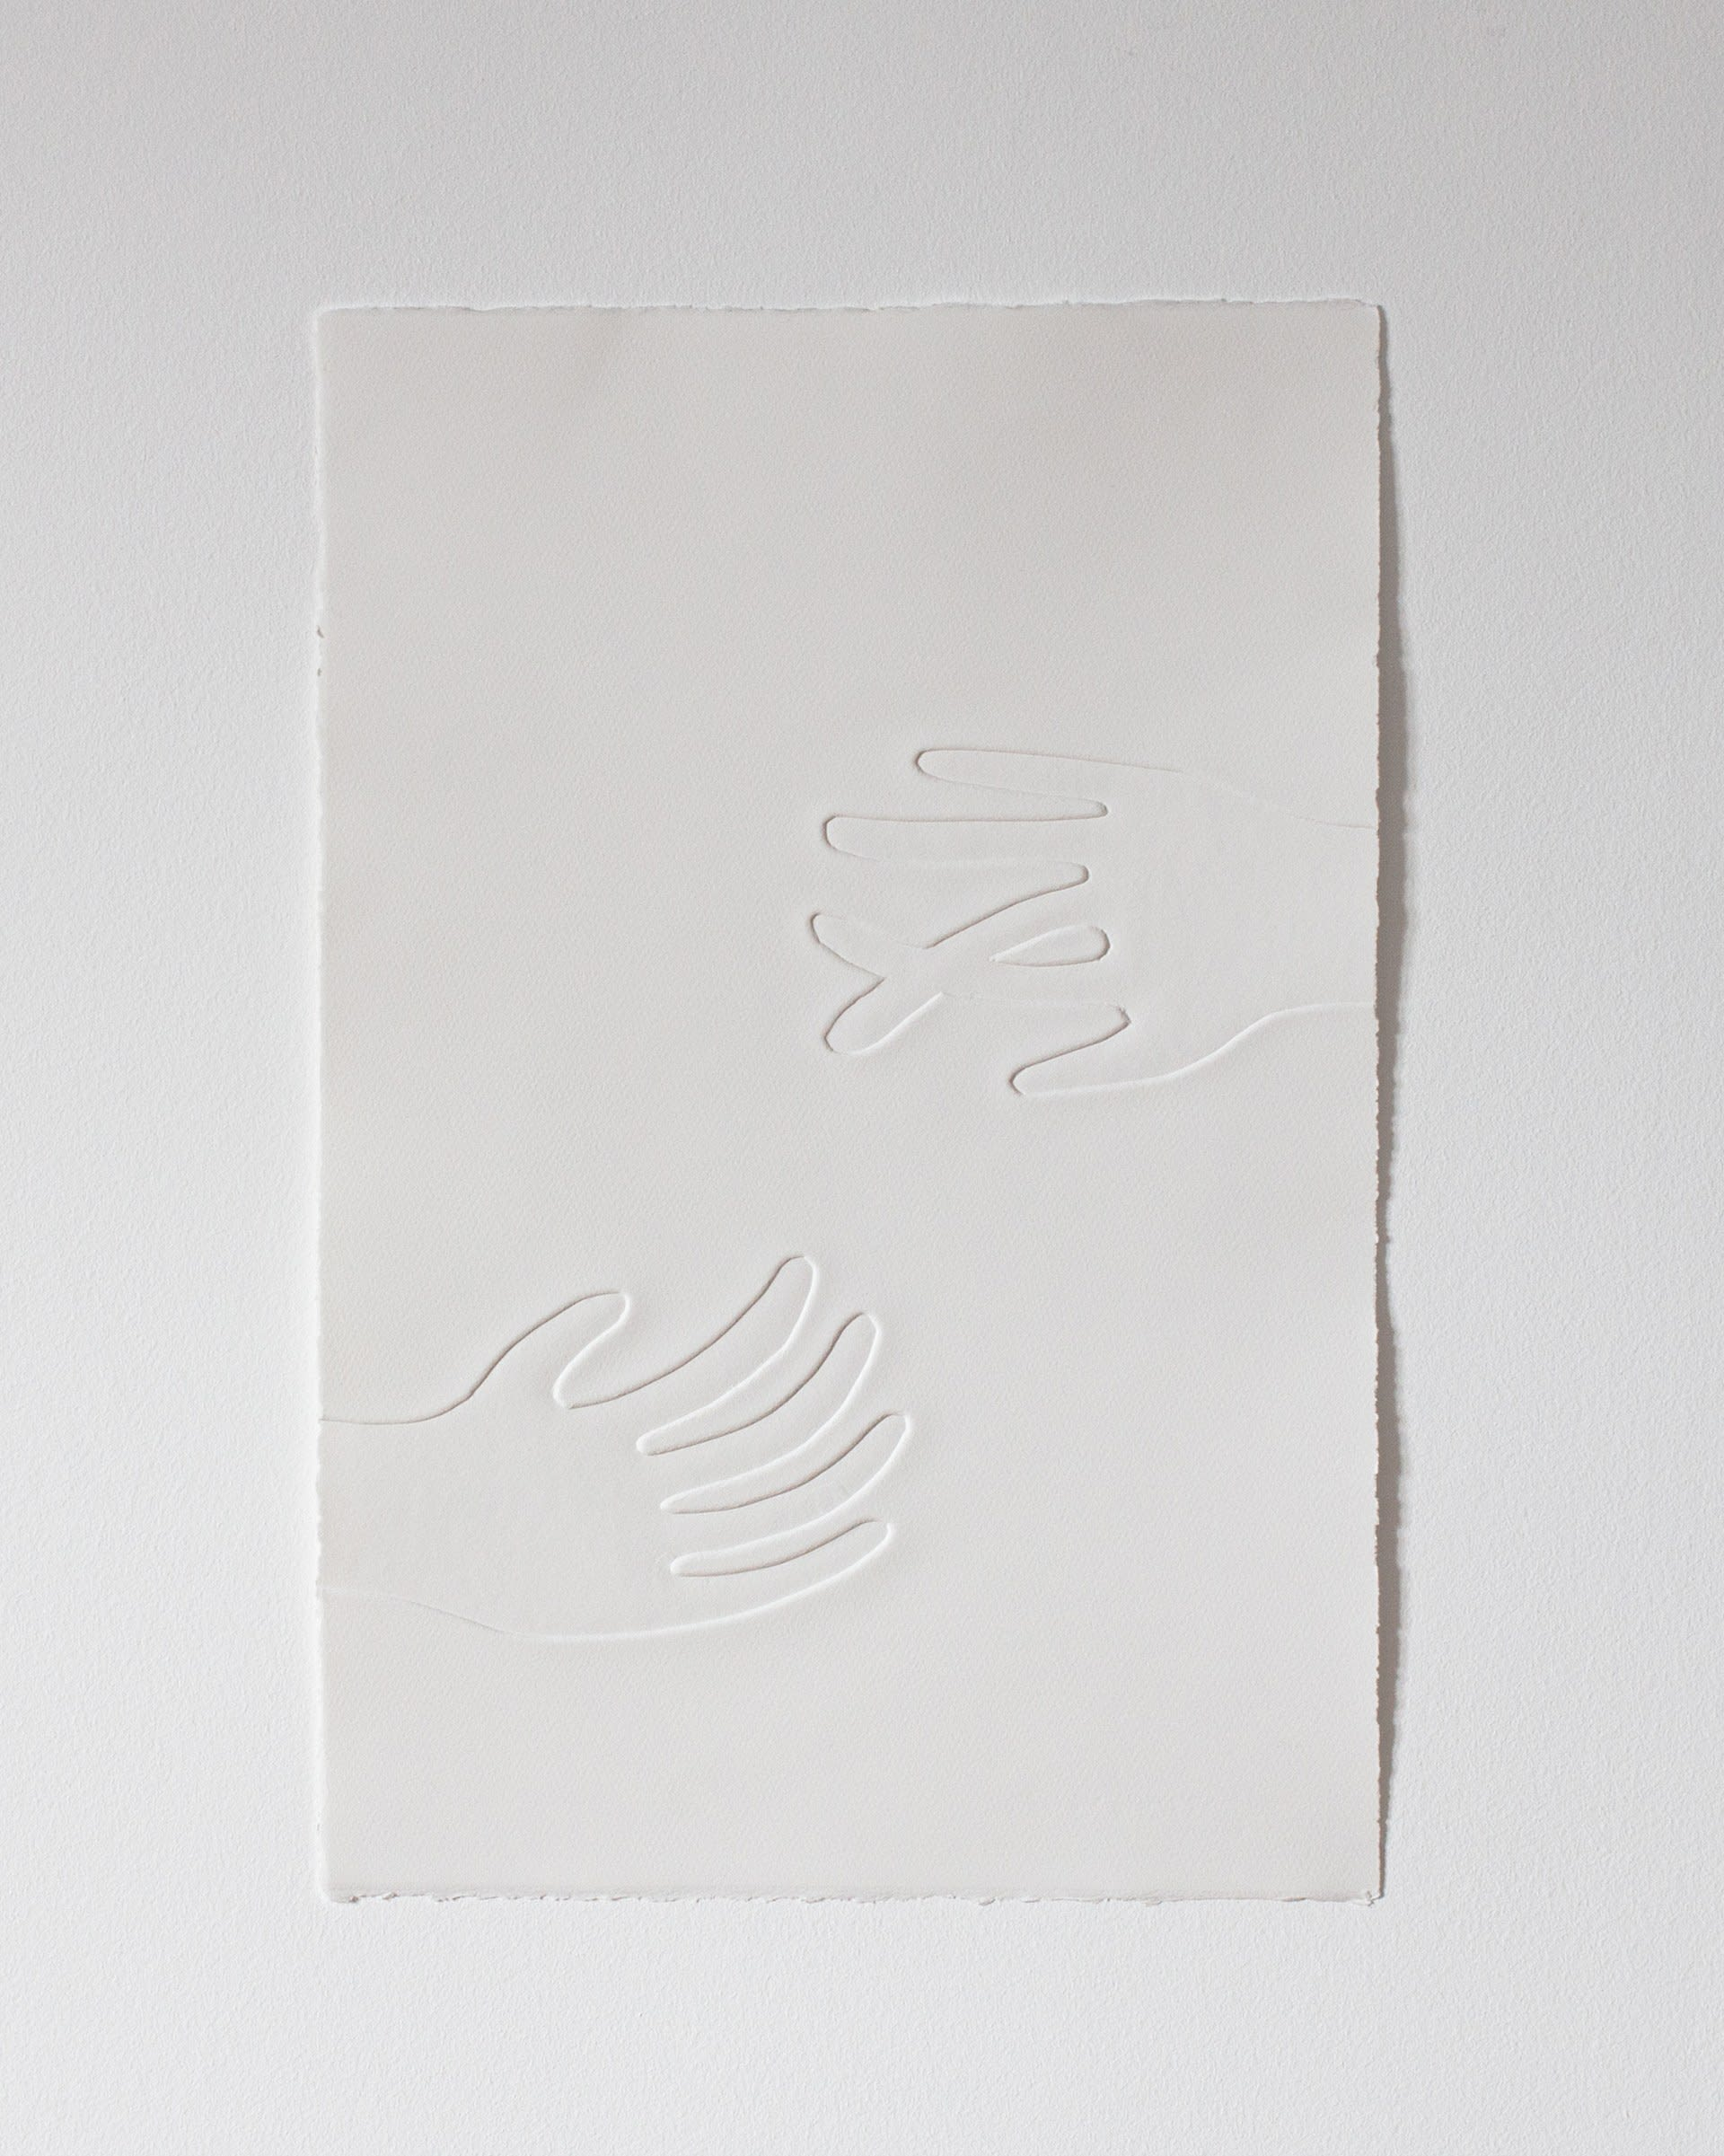 Untitled (two hands on paper)